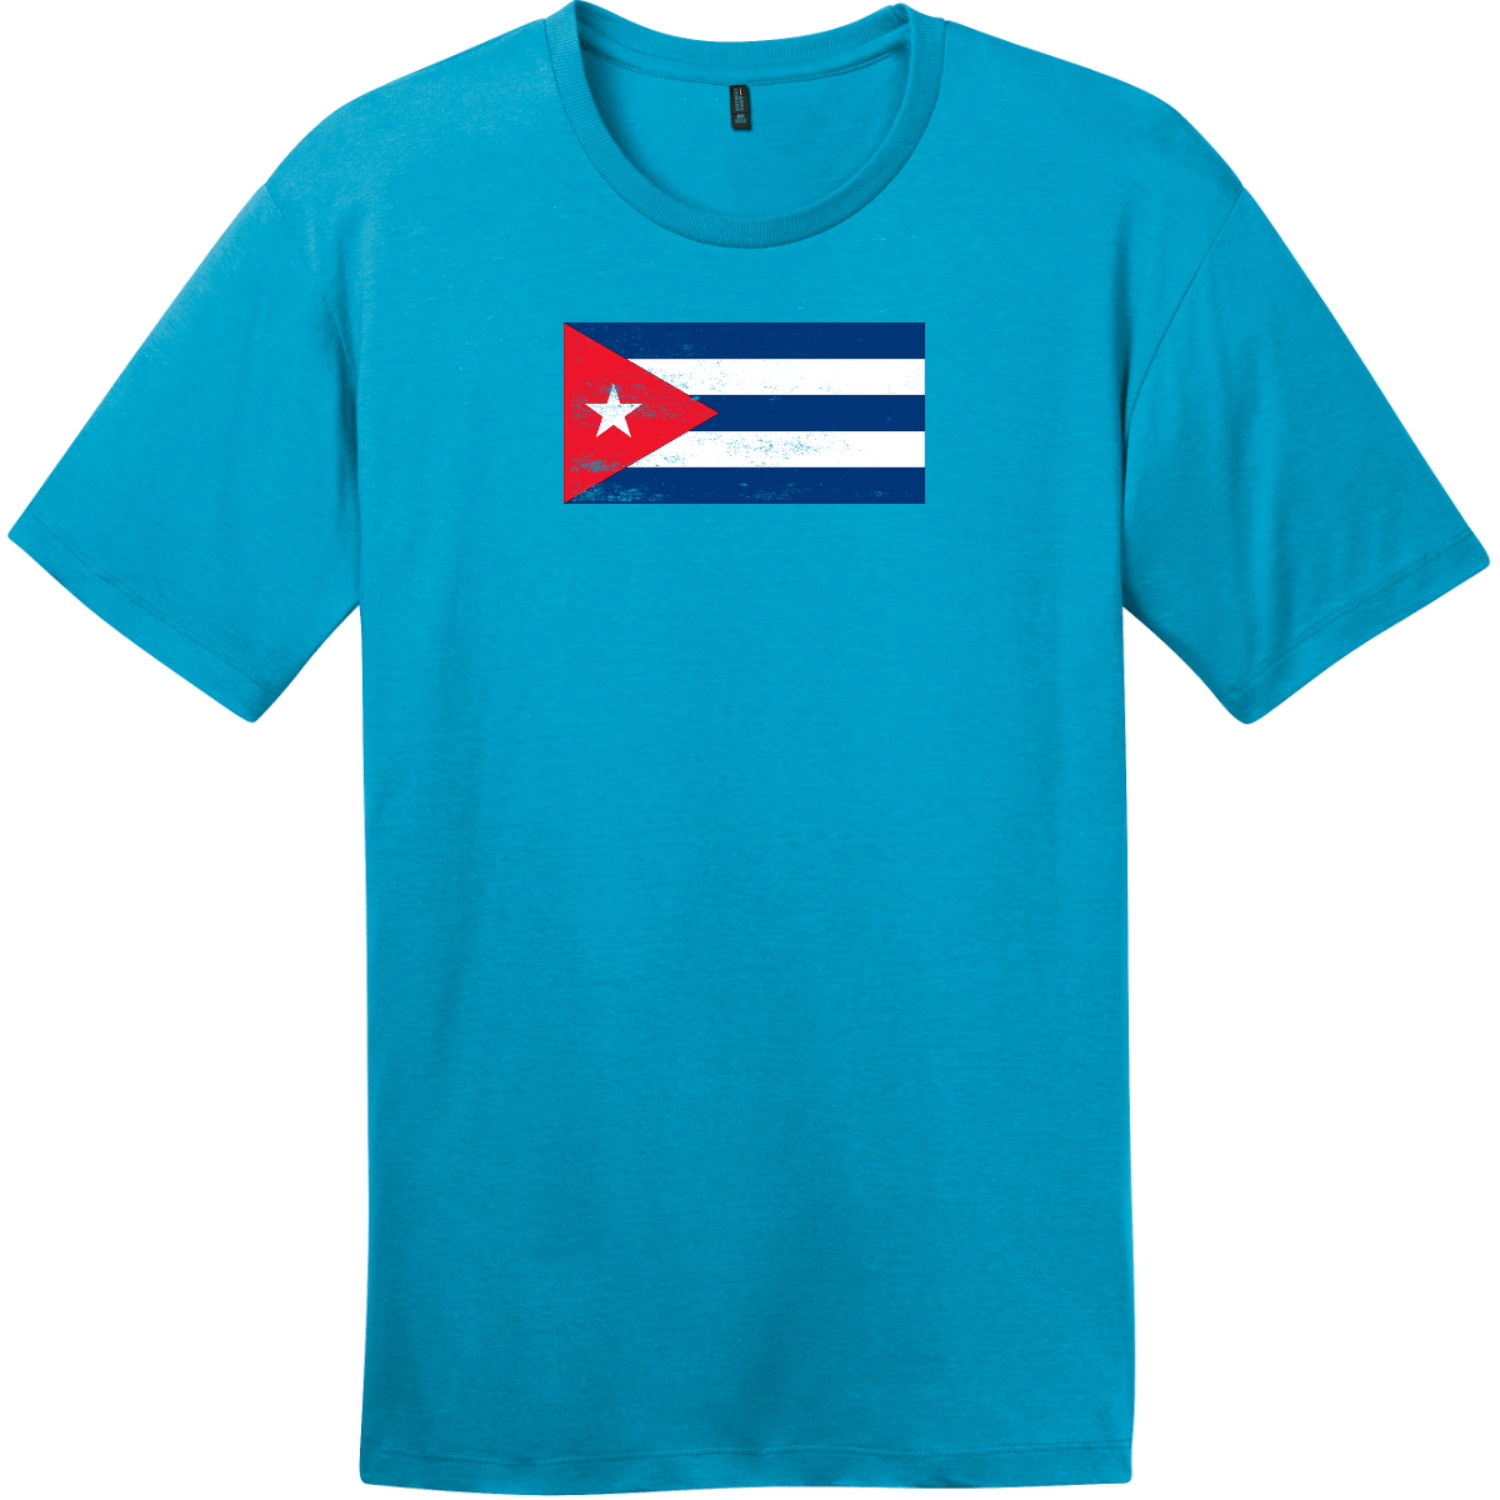 Cuba Vintage Flag T-Shirt Bright Turquoise District Perfect Weight Tee DT104